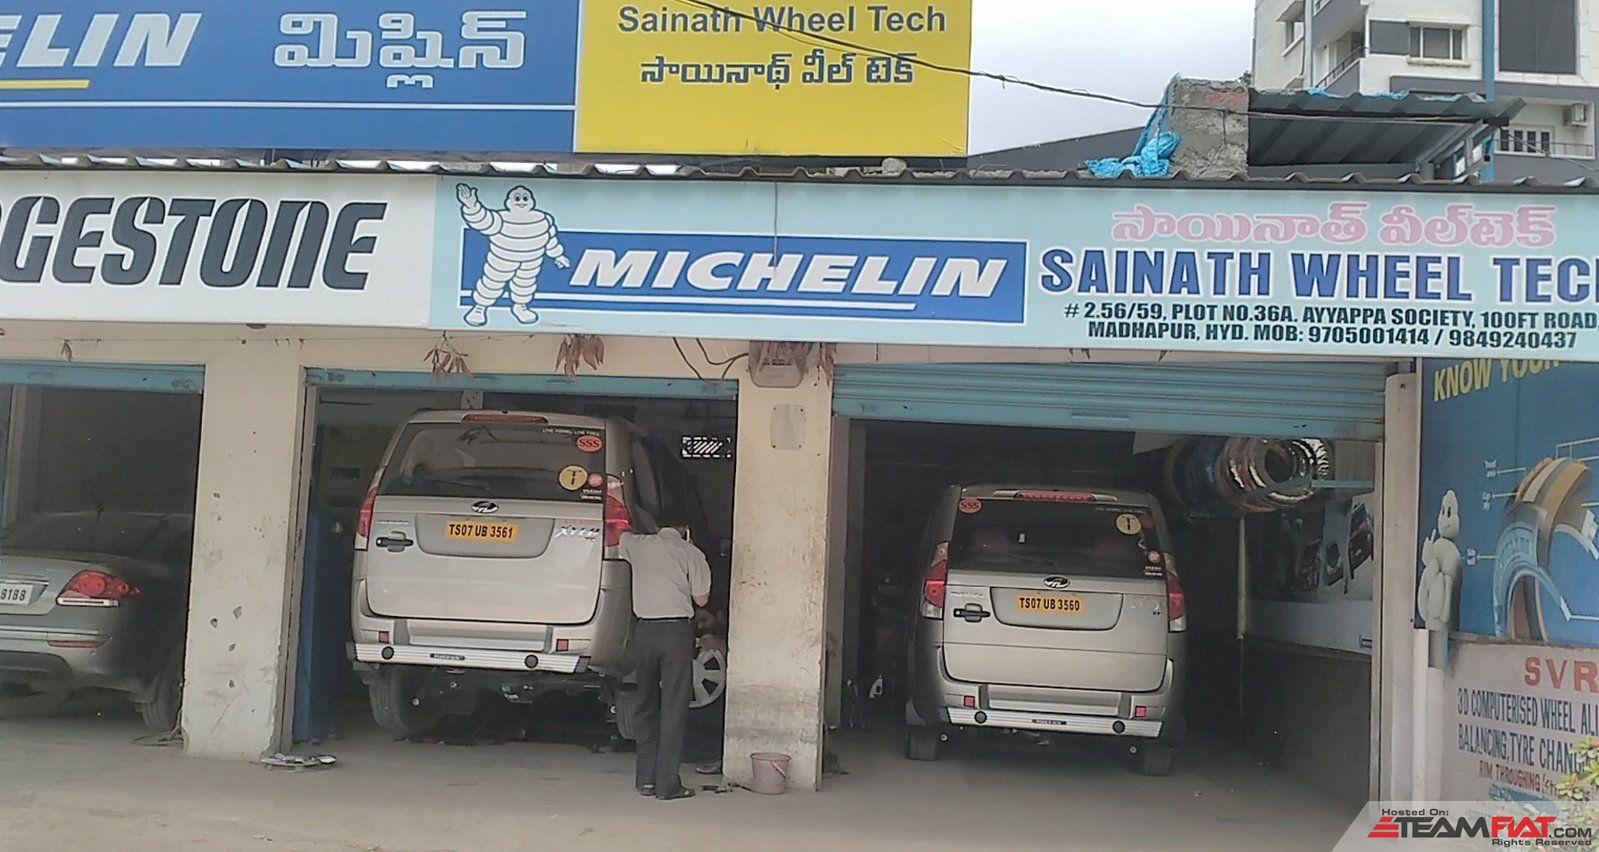 Sainath Tech Wheels.jpg